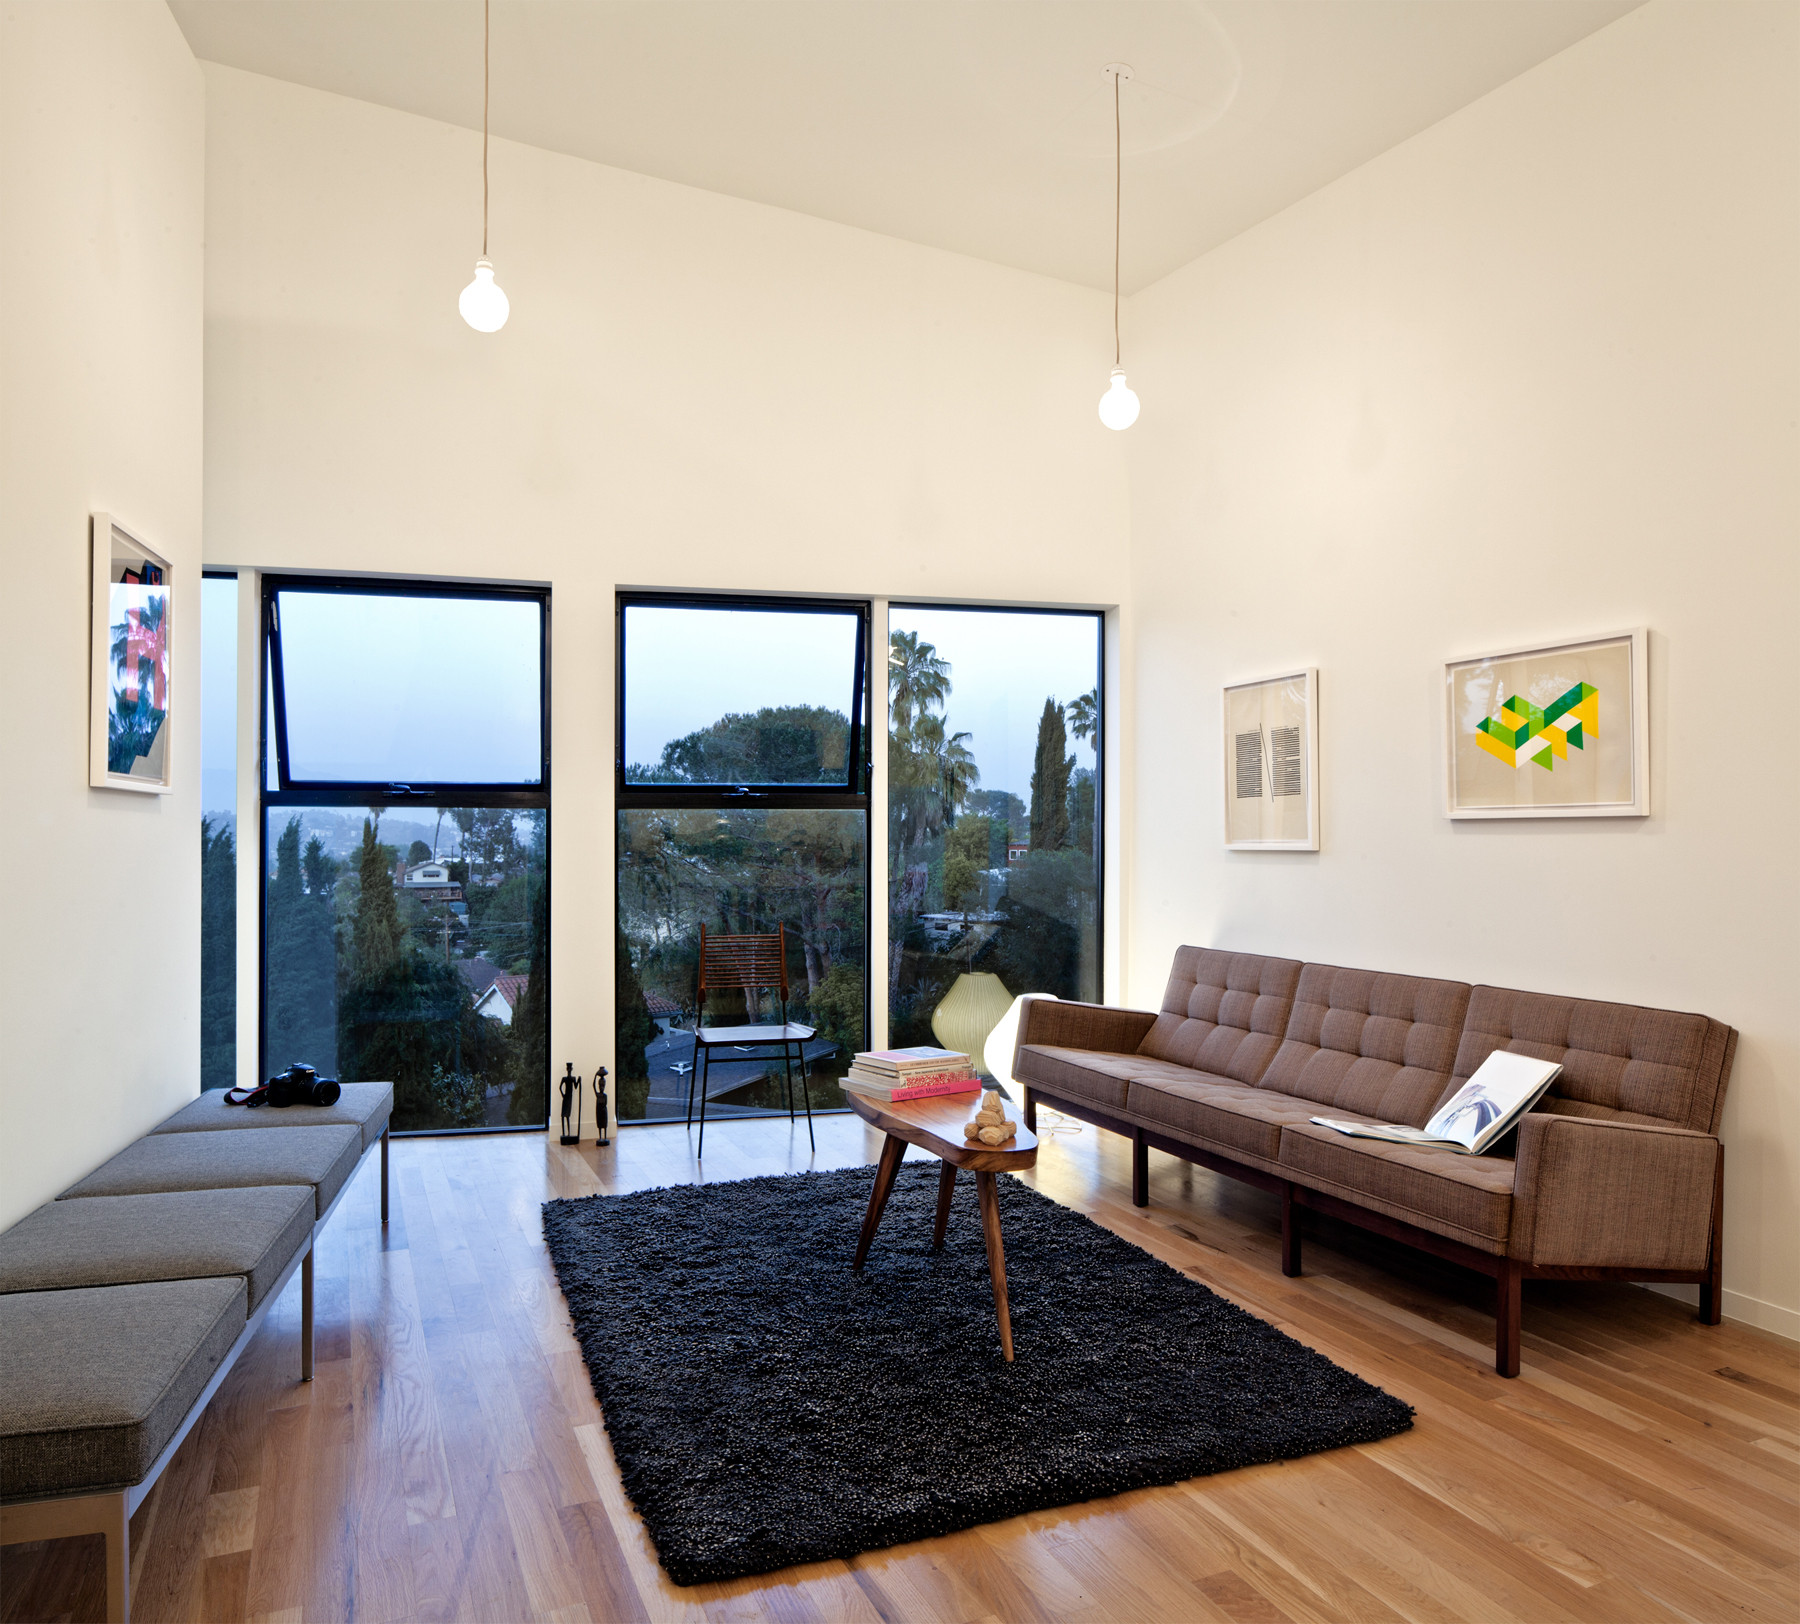 Home Interior Design Ideas For Small Areas: A Single-Space Living Area Helps This Compact Home To Feel